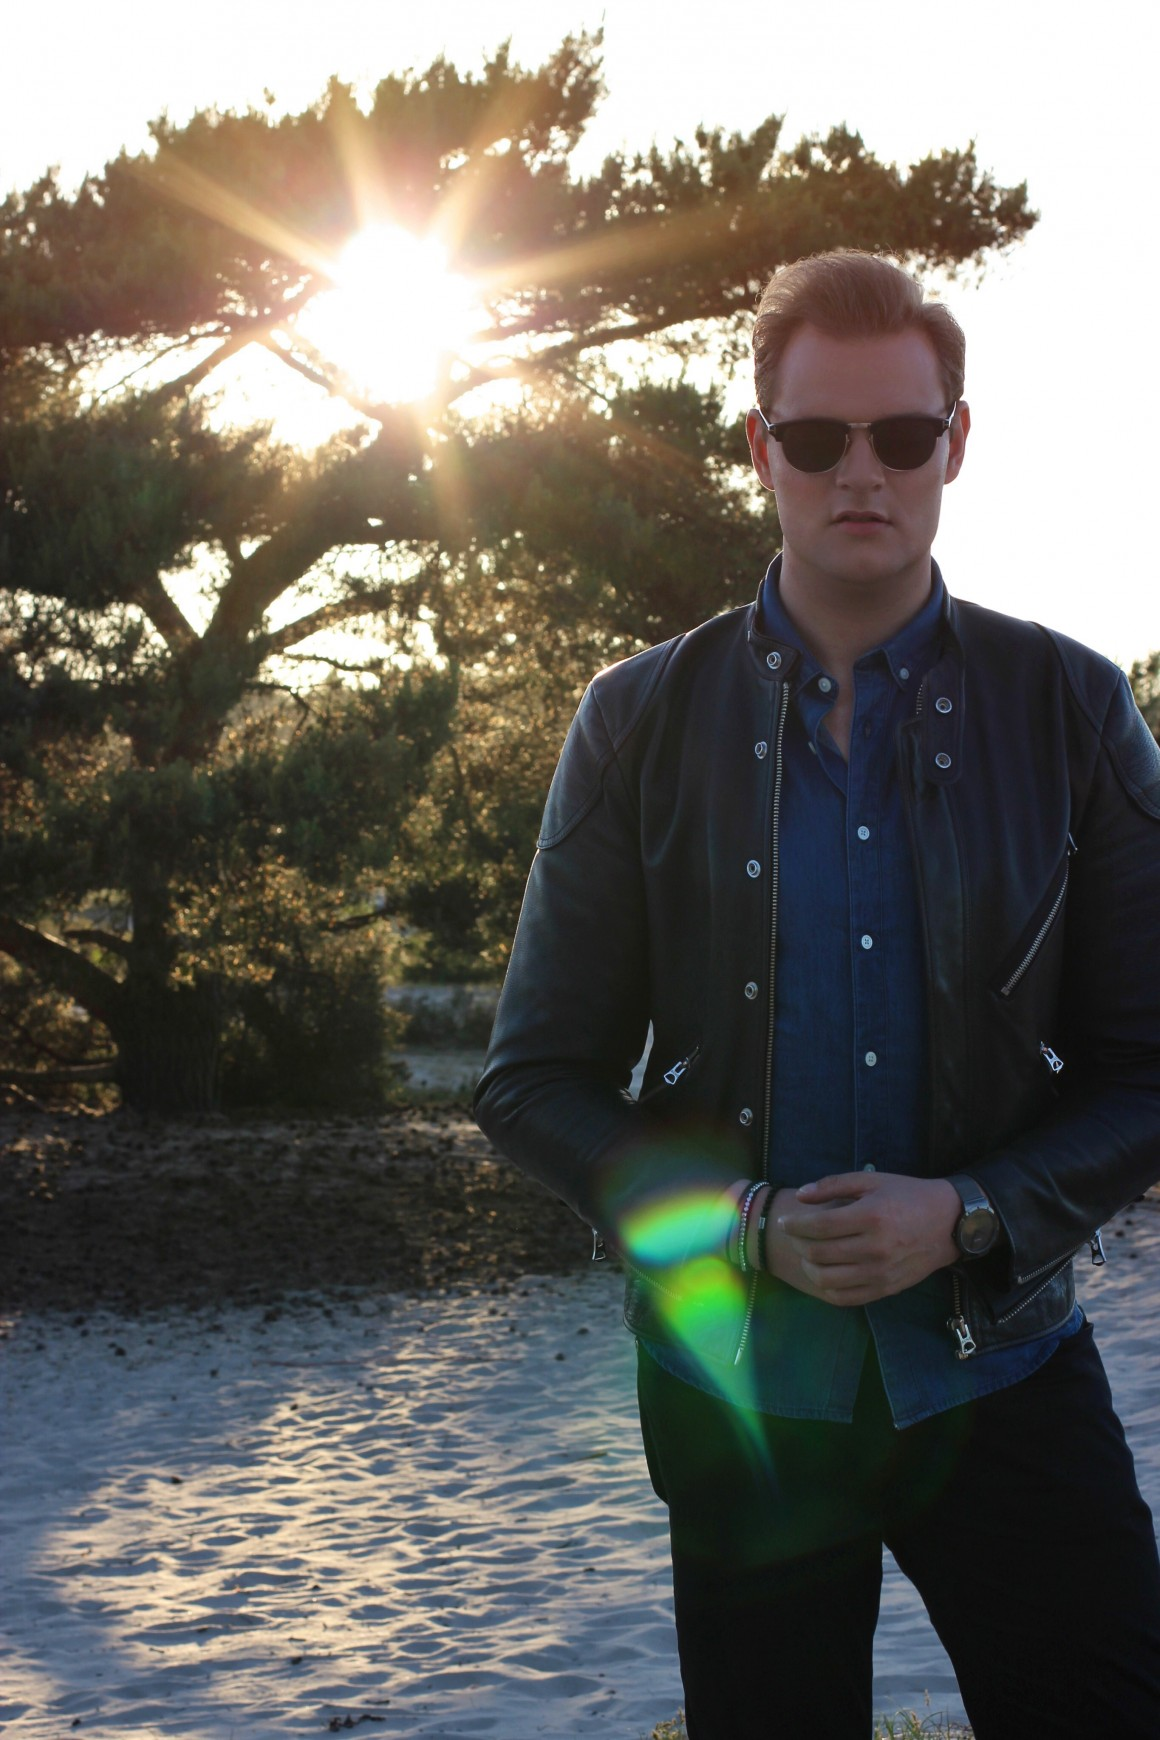 Accessoires trends for men featuring Trendhim.nl - Shot at Soesterduinen JustKVN menswear and lifestyle blog